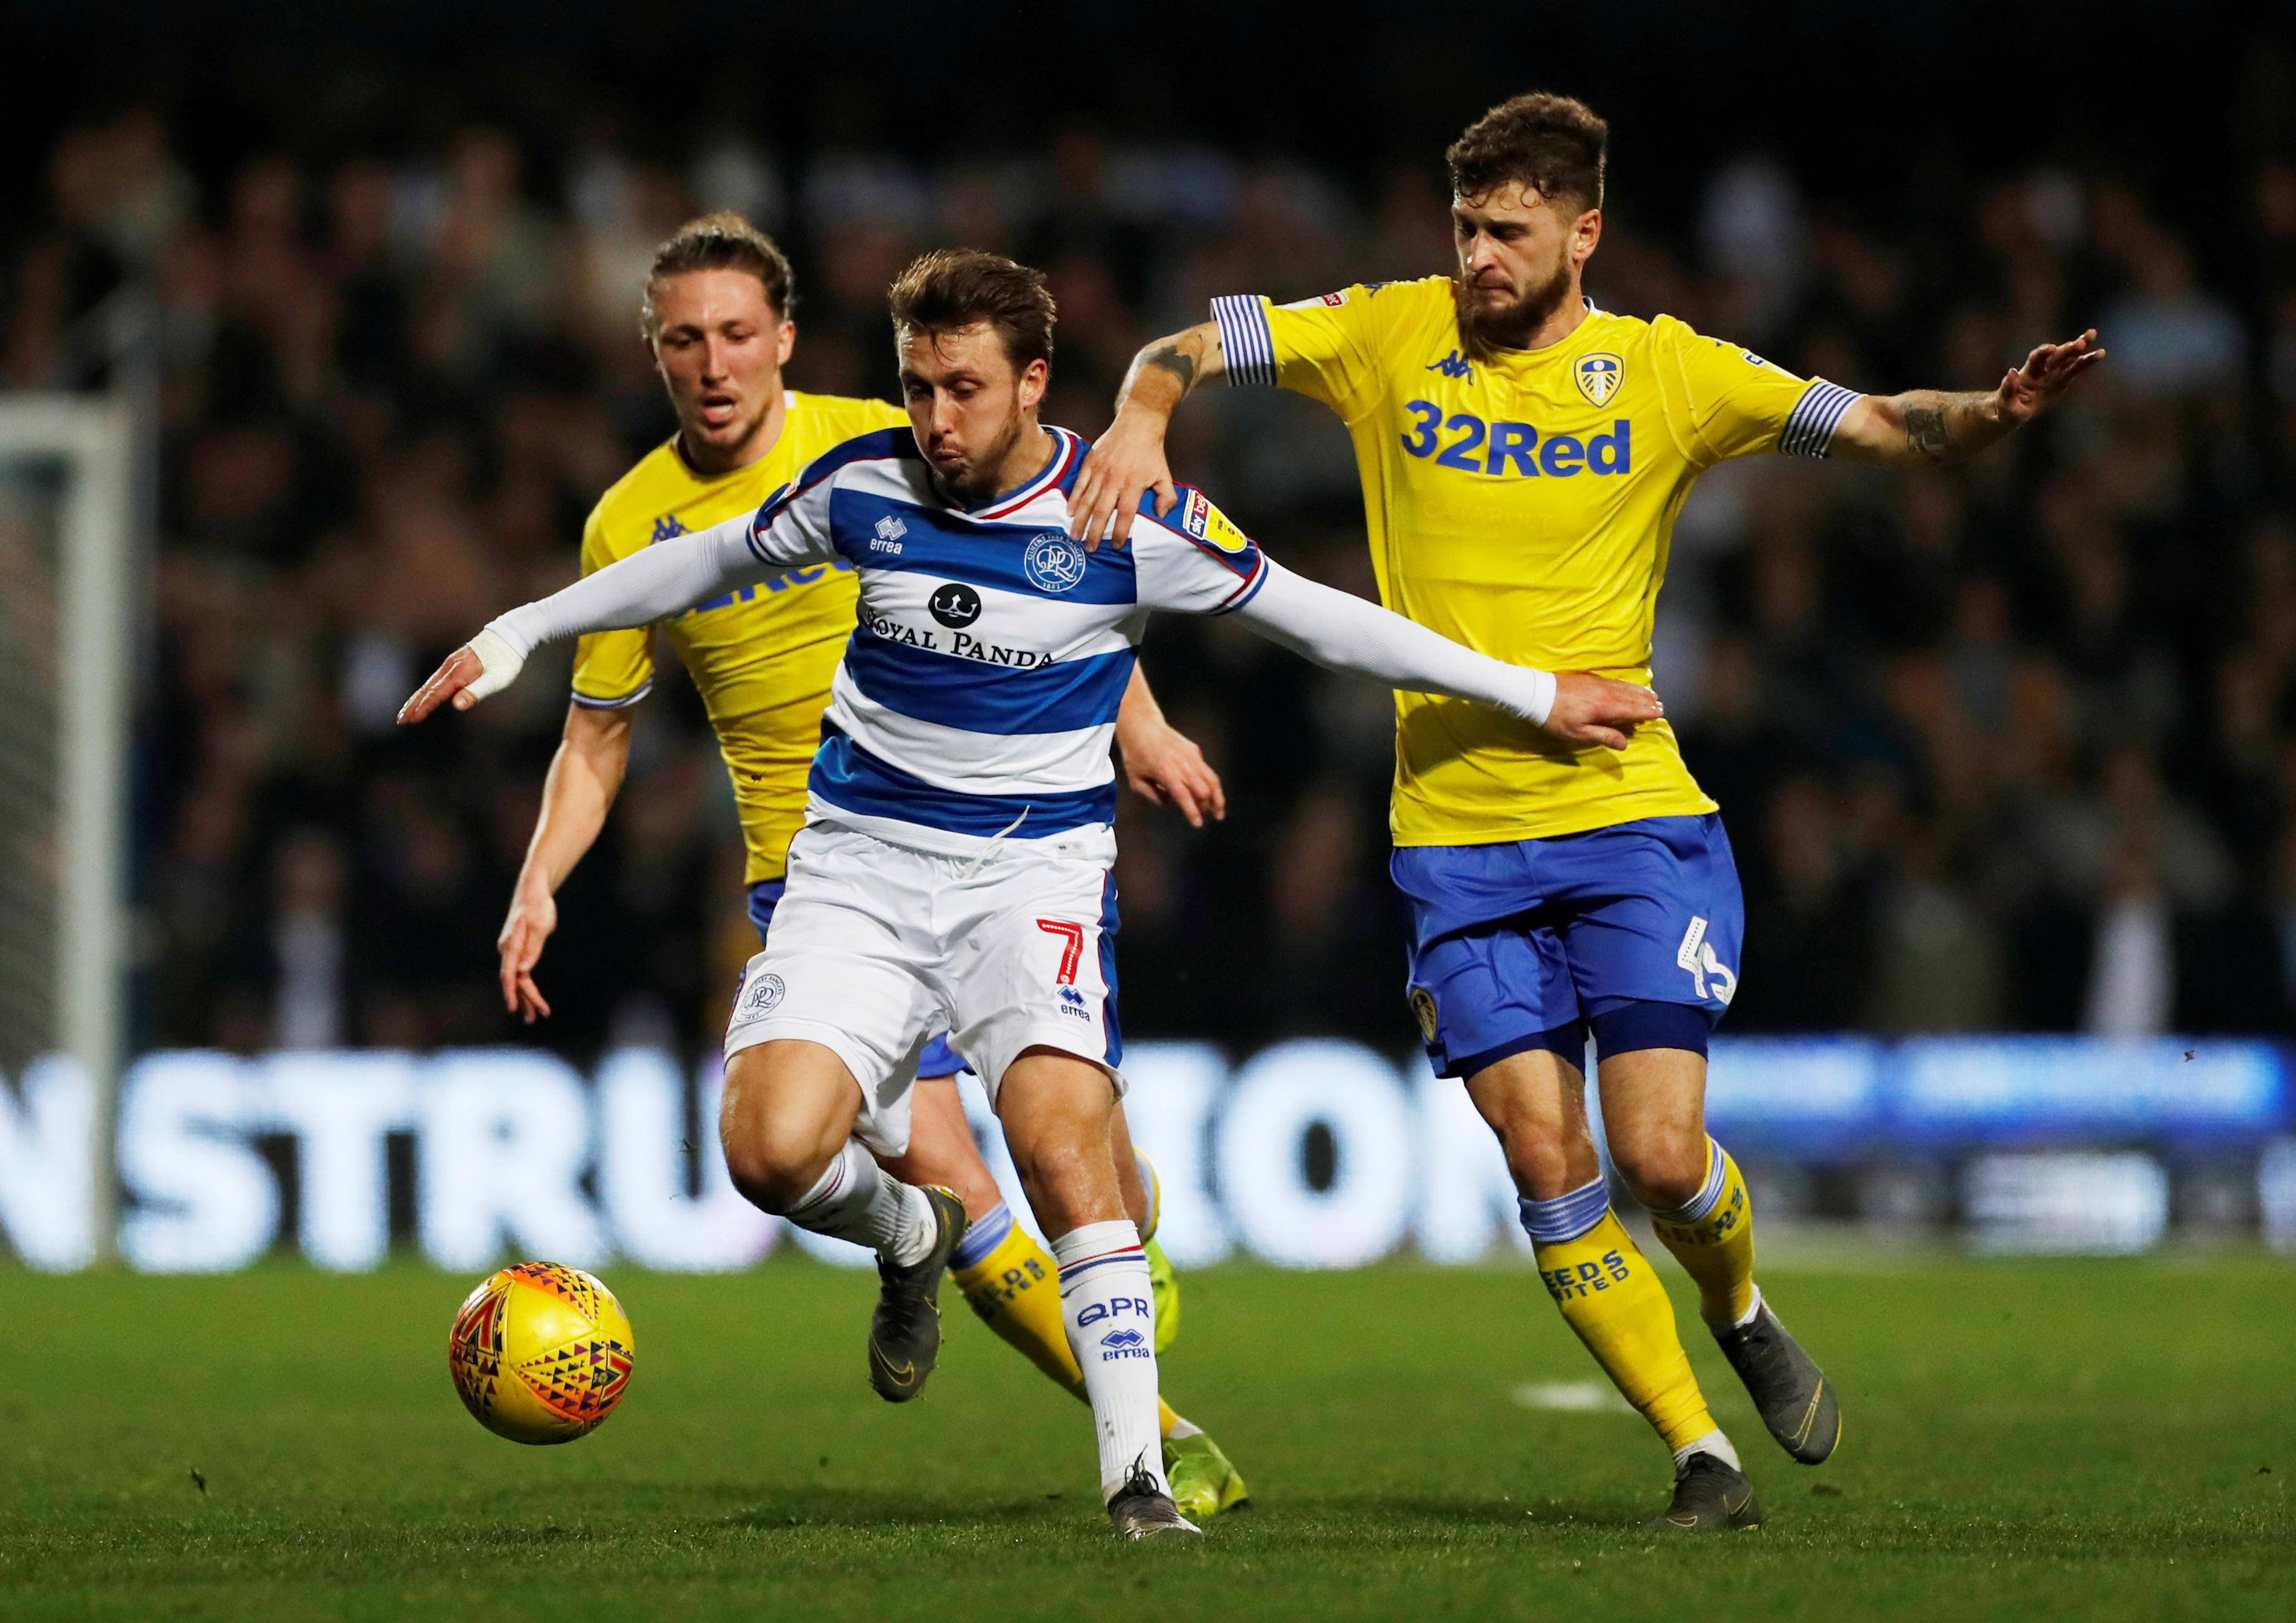 Sheffield United sign Freeman from QPR